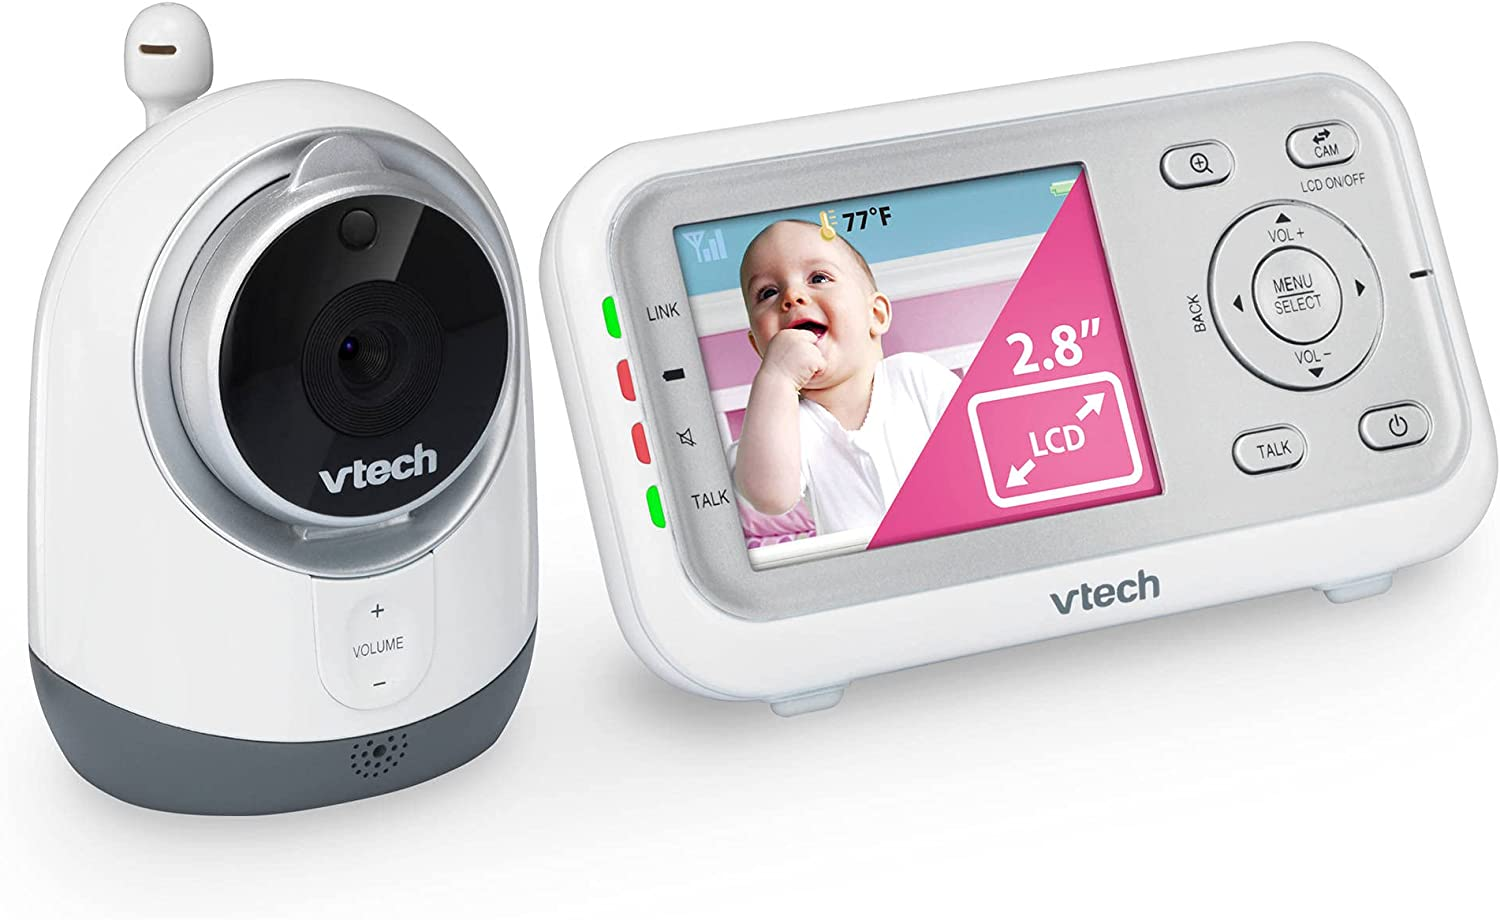 VTech VM3251 Video Baby Monitor with Automatic Infrared Night Vision, Soothing Sounds & Lullabies, Temperature Sensor & 1,000 feet of Range (Renewed)